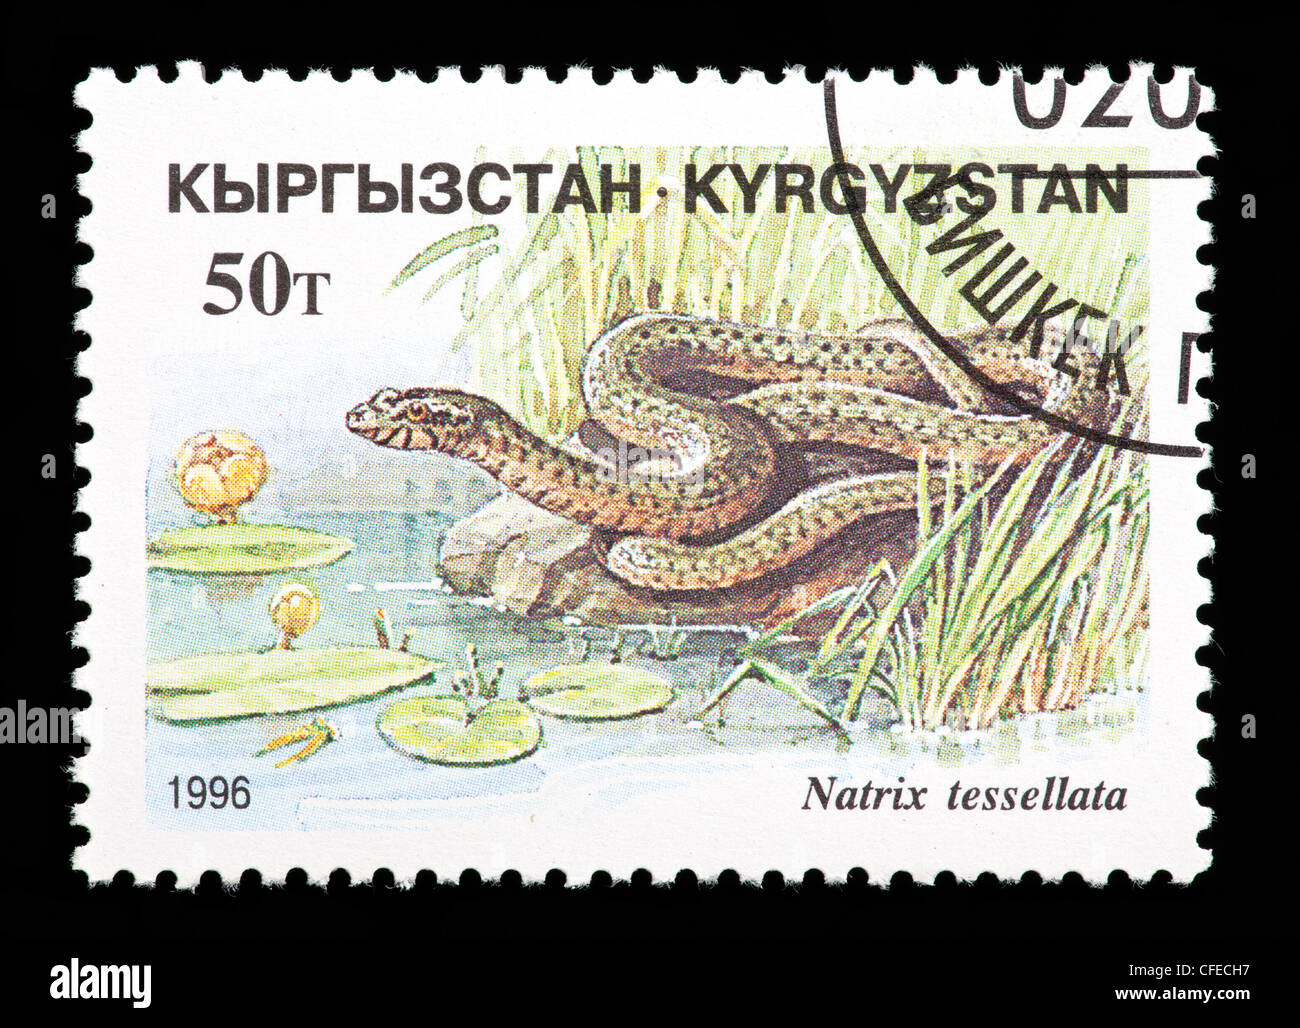 Postage stamp from Kyrgyzstan depicting a dice snake (Natrix tessellata) - Stock Image